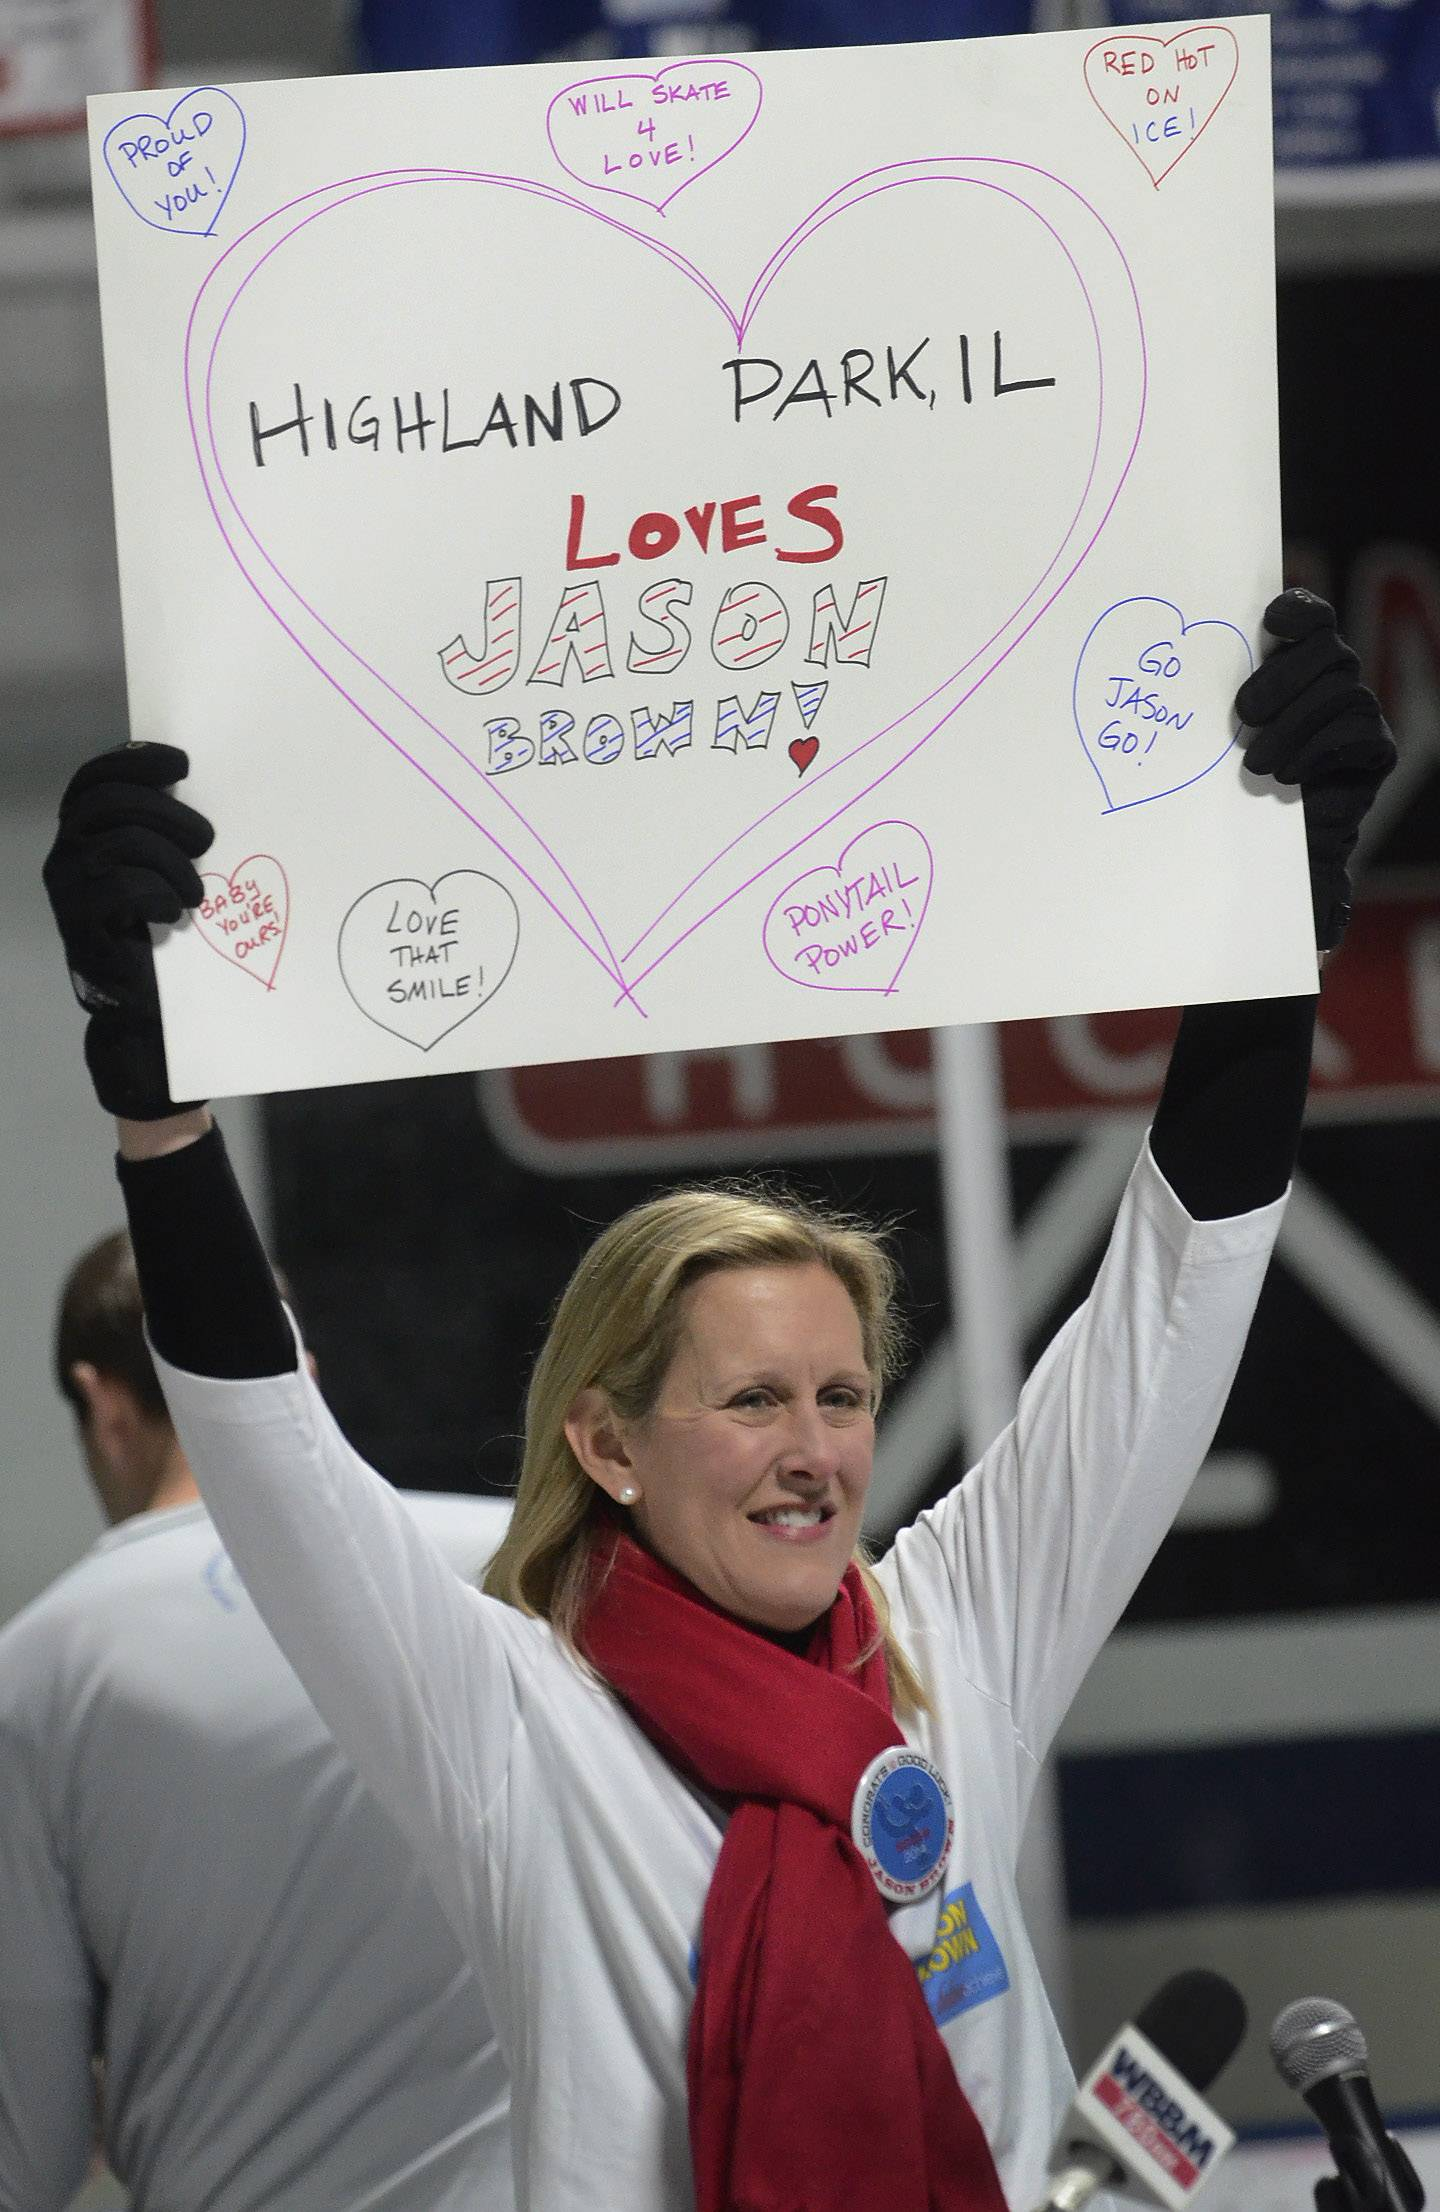 Highland Park Mayor Nancy Rotering cheers with the crowd Friday during a viewing party at the Centennial Ice Arena for U.S. Olympic skater Jason Brown from Highland Park.